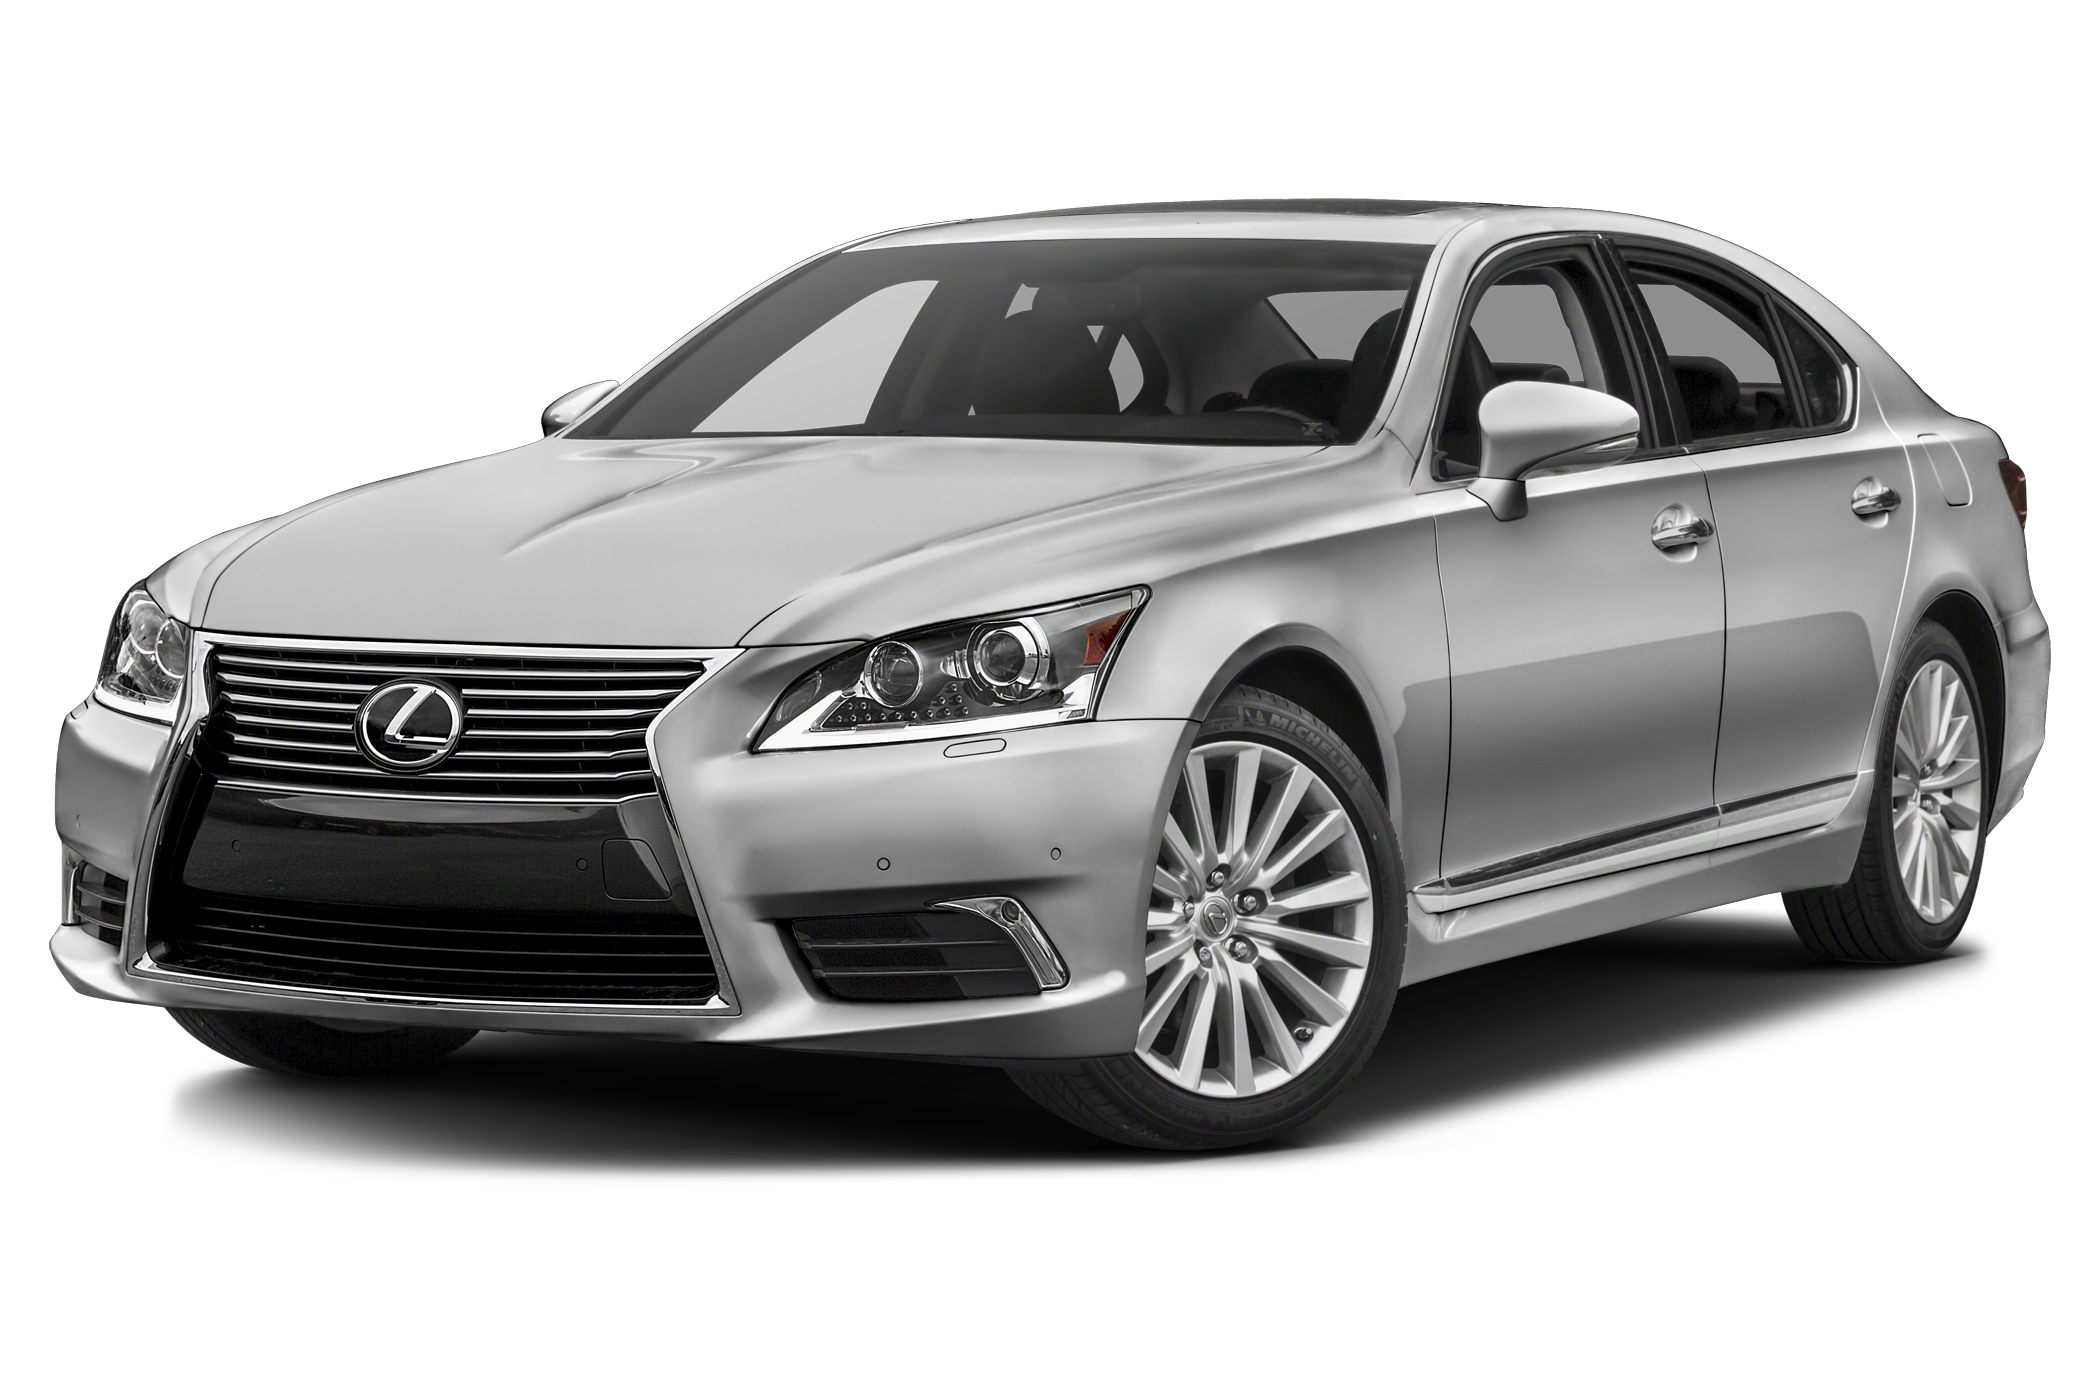 2014 Lexus LS 460 L Sedan for sale in Houston for $0 with 0 miles